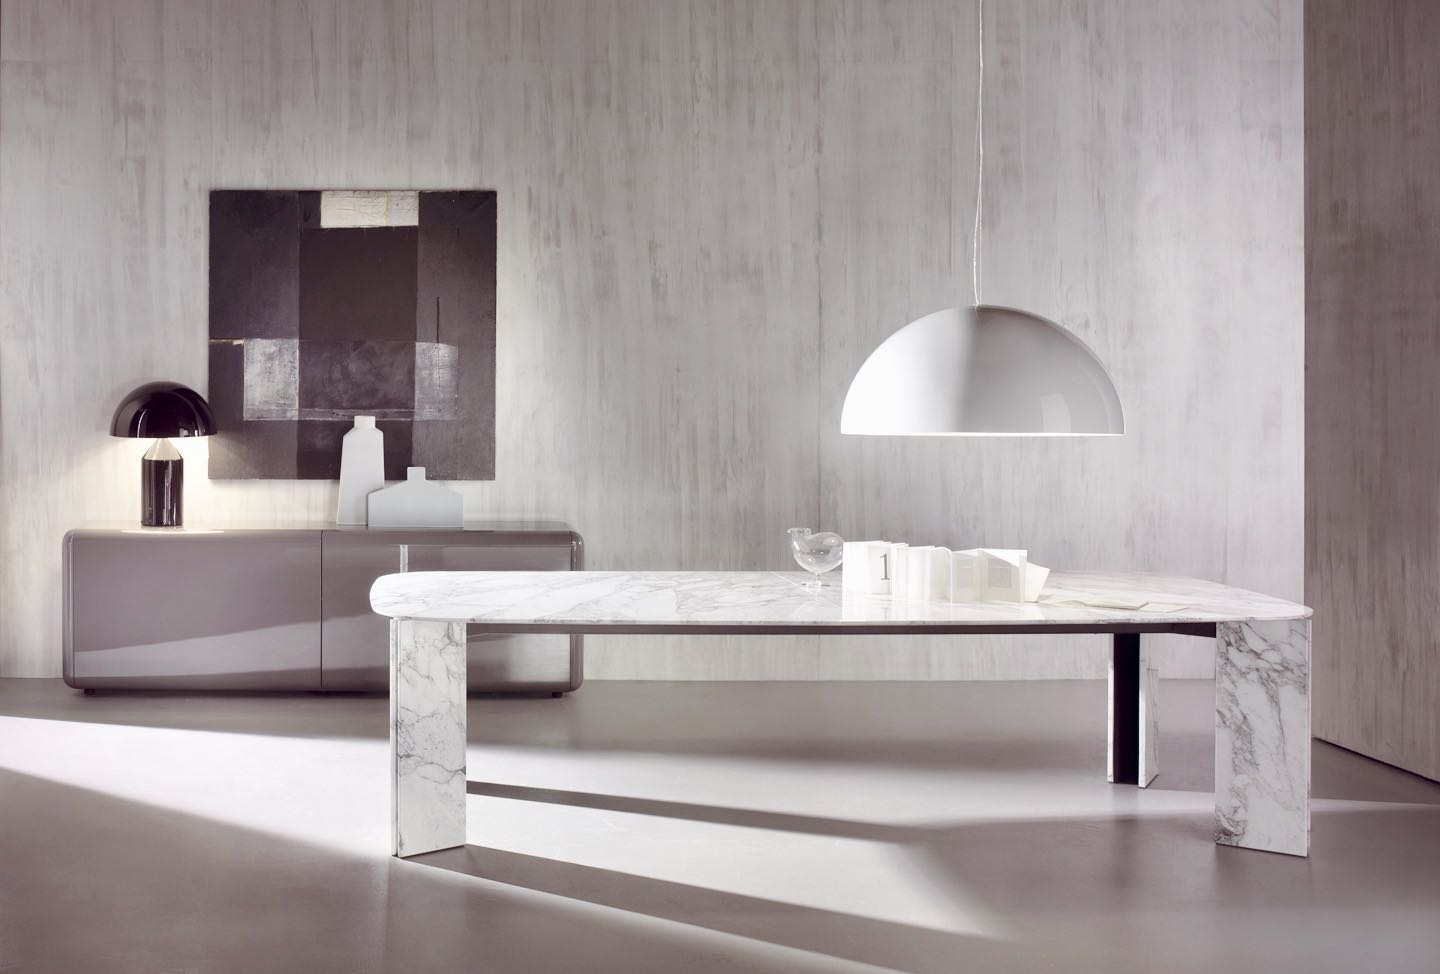 Dining room tables - pendant lamps - sideboards